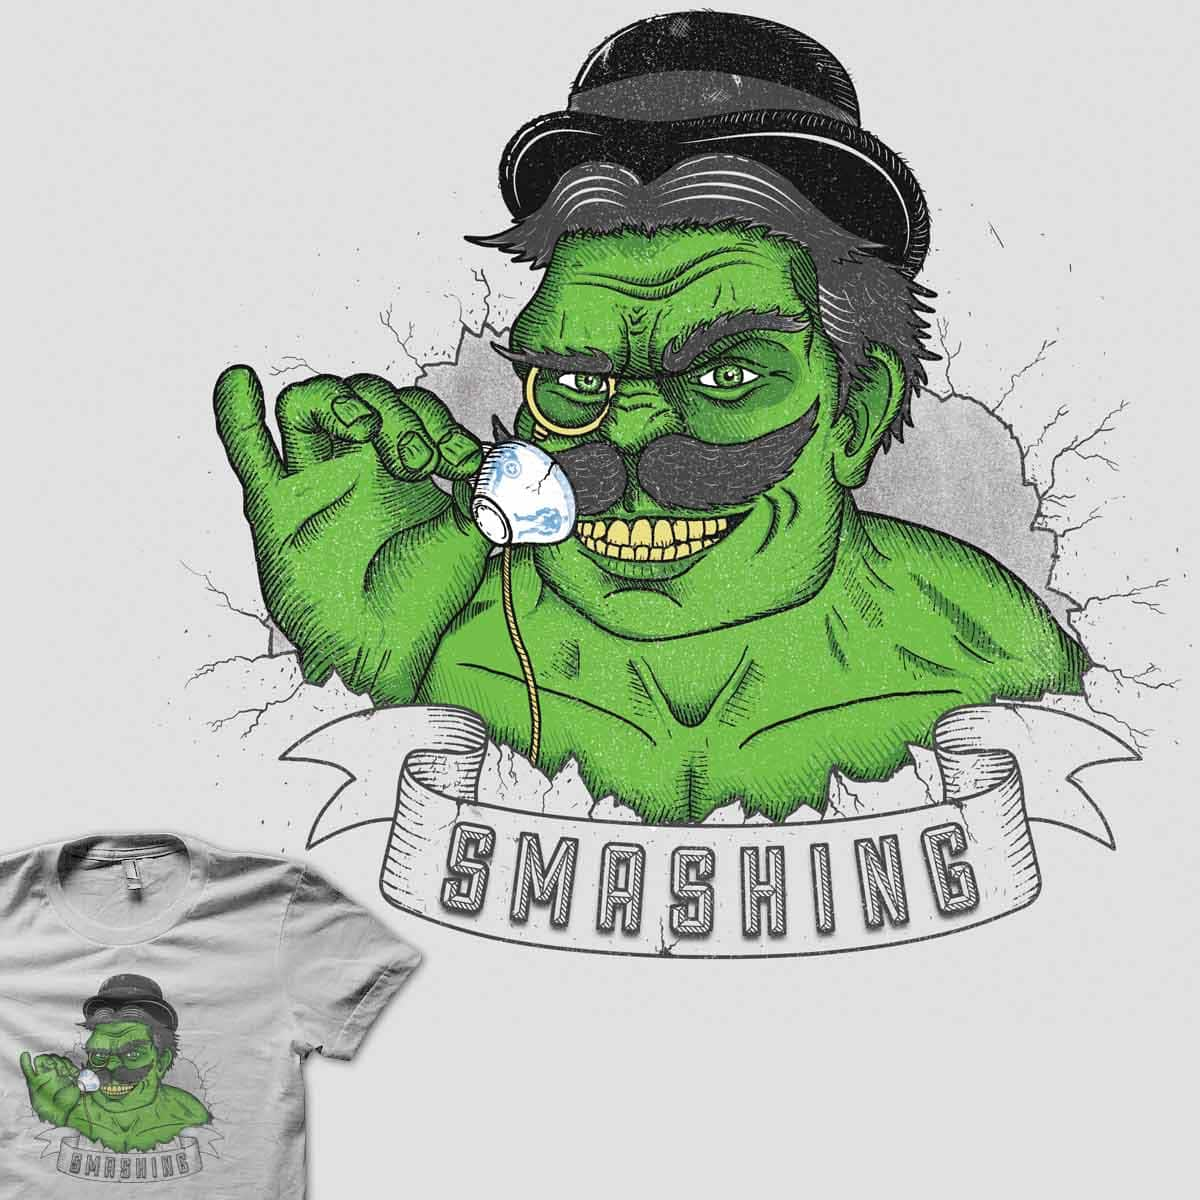 SMASHING by neilss1 on Threadless